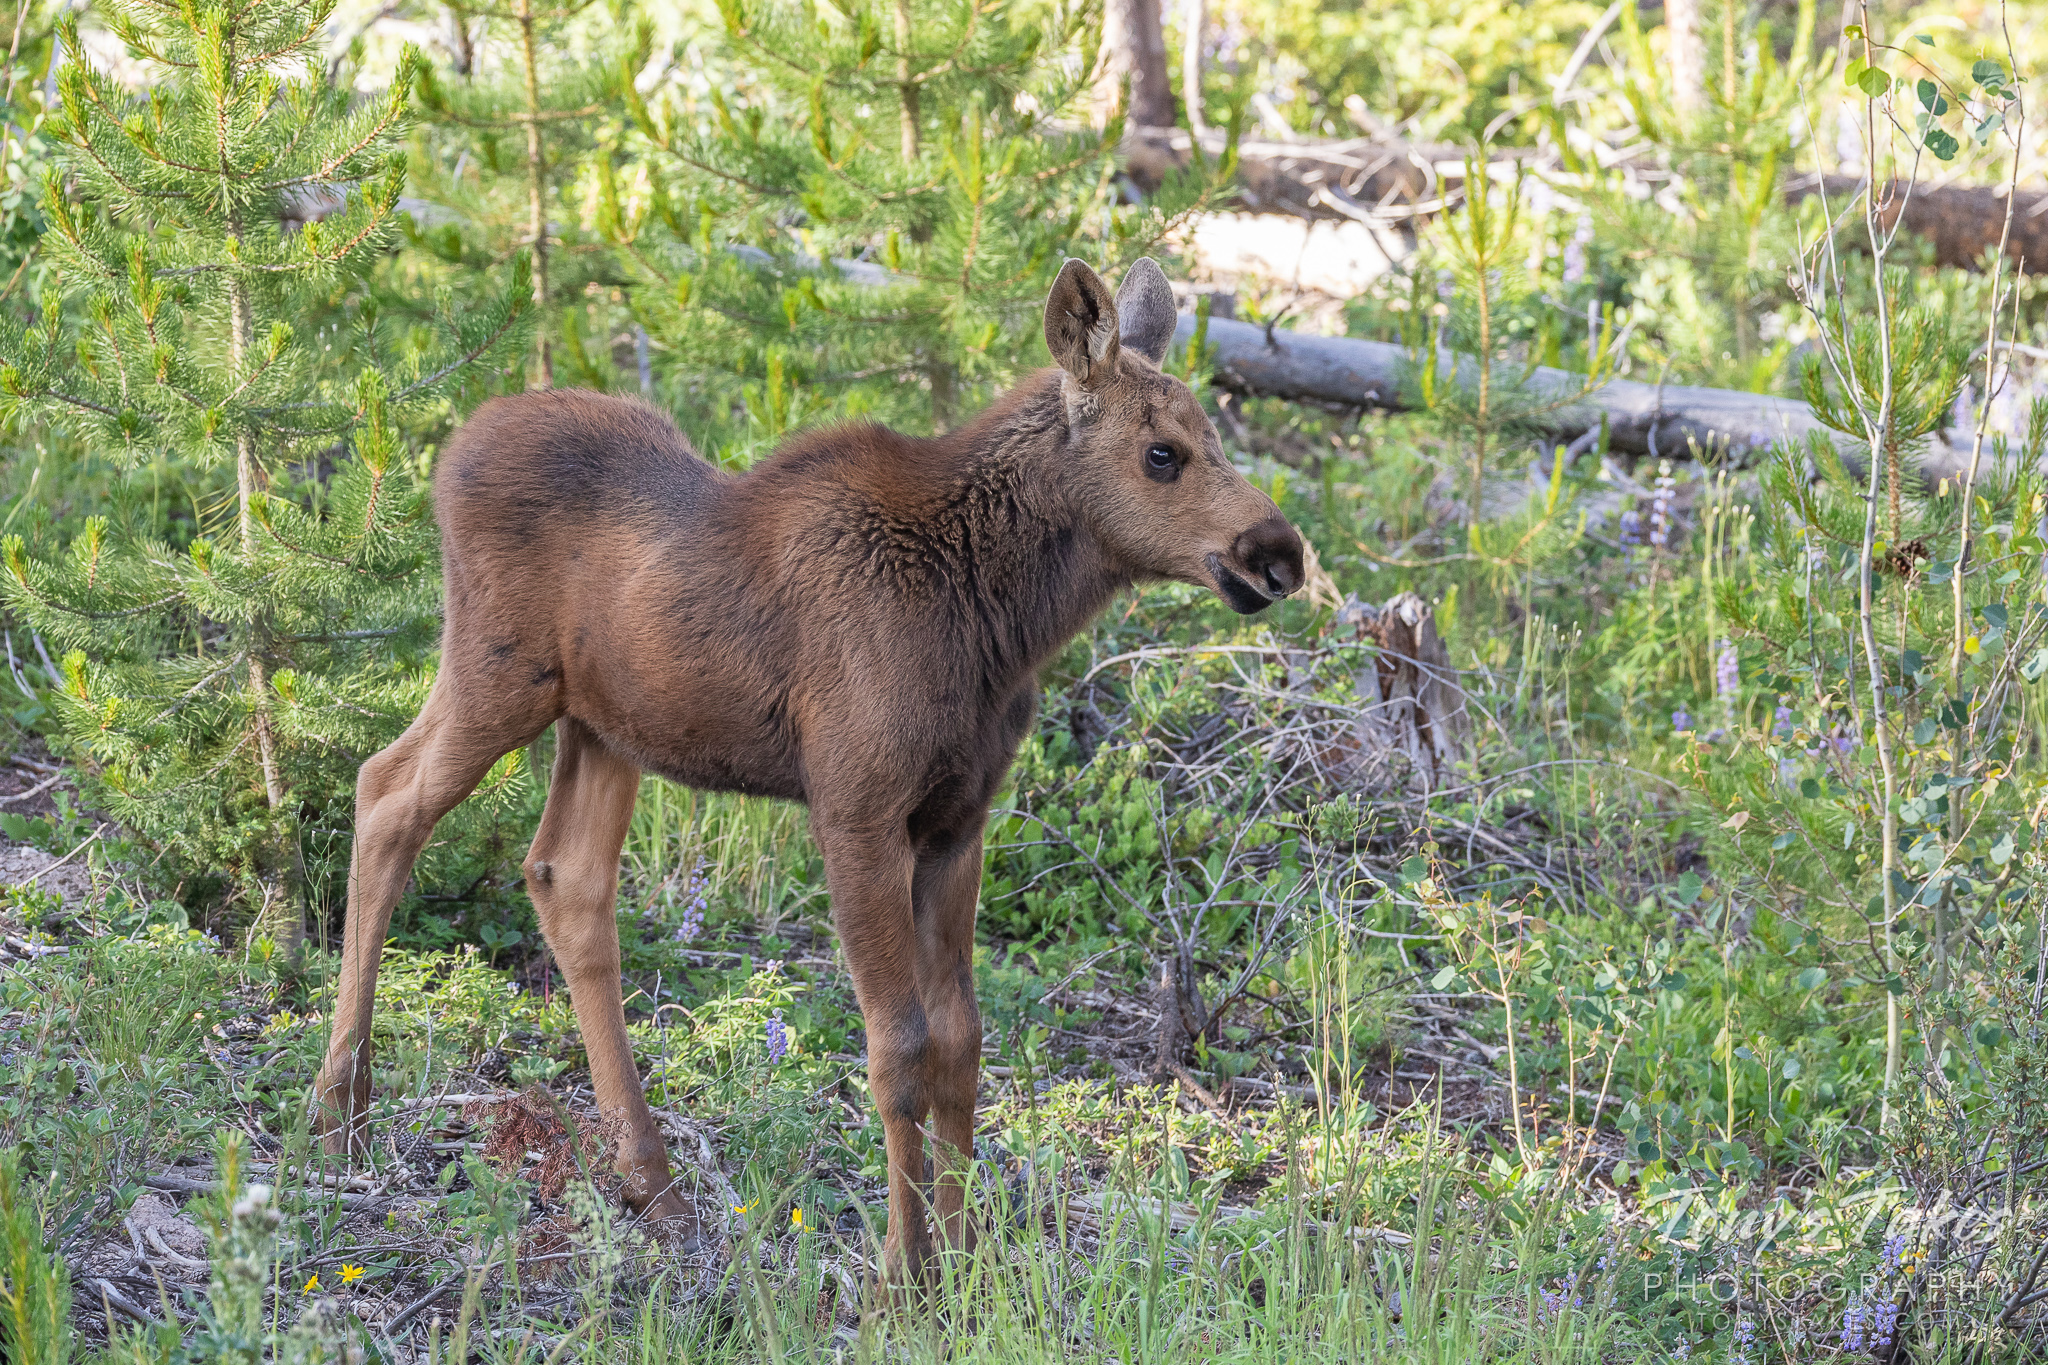 A very cute moose calf. (© Tony's Takes)